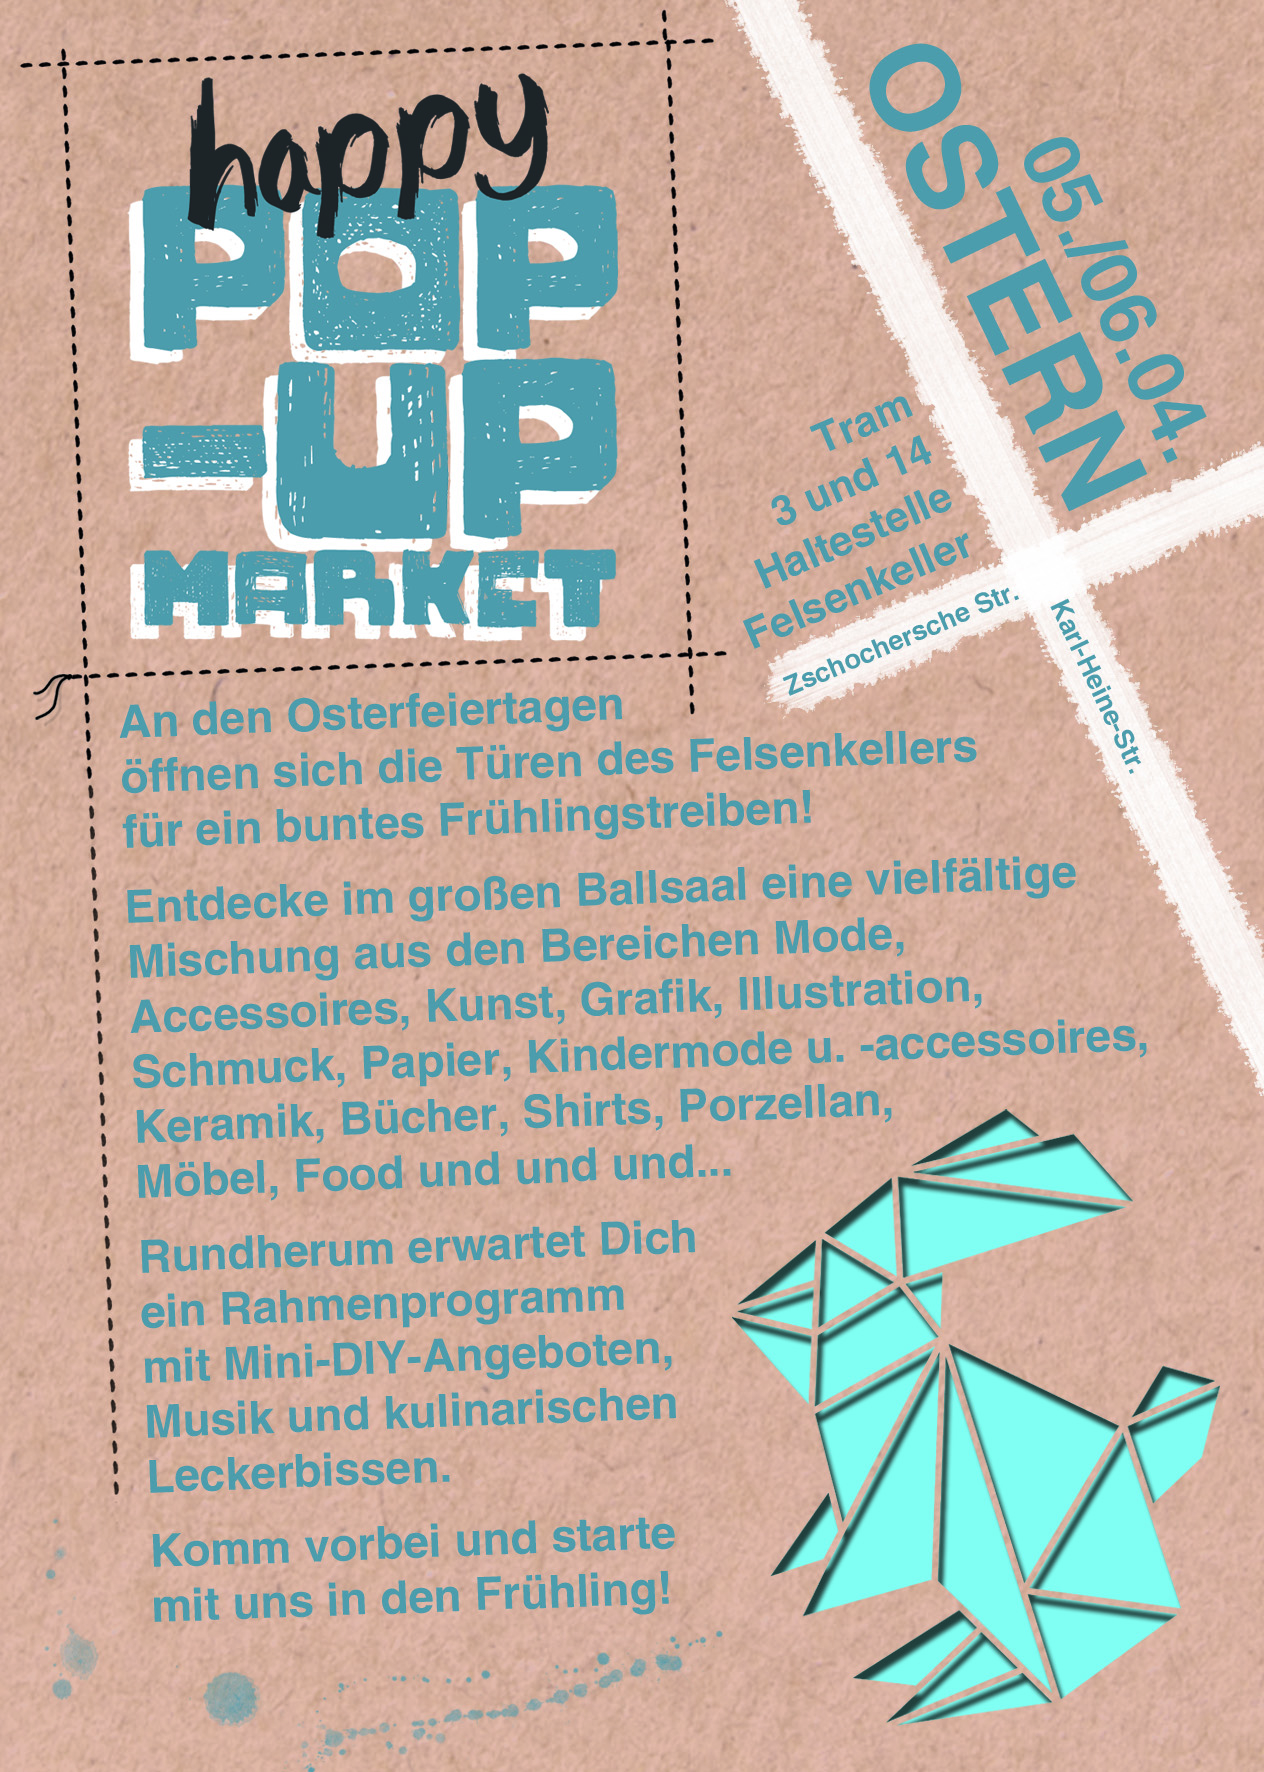 happyPOPUPmarket_Ostern_Flyer_back